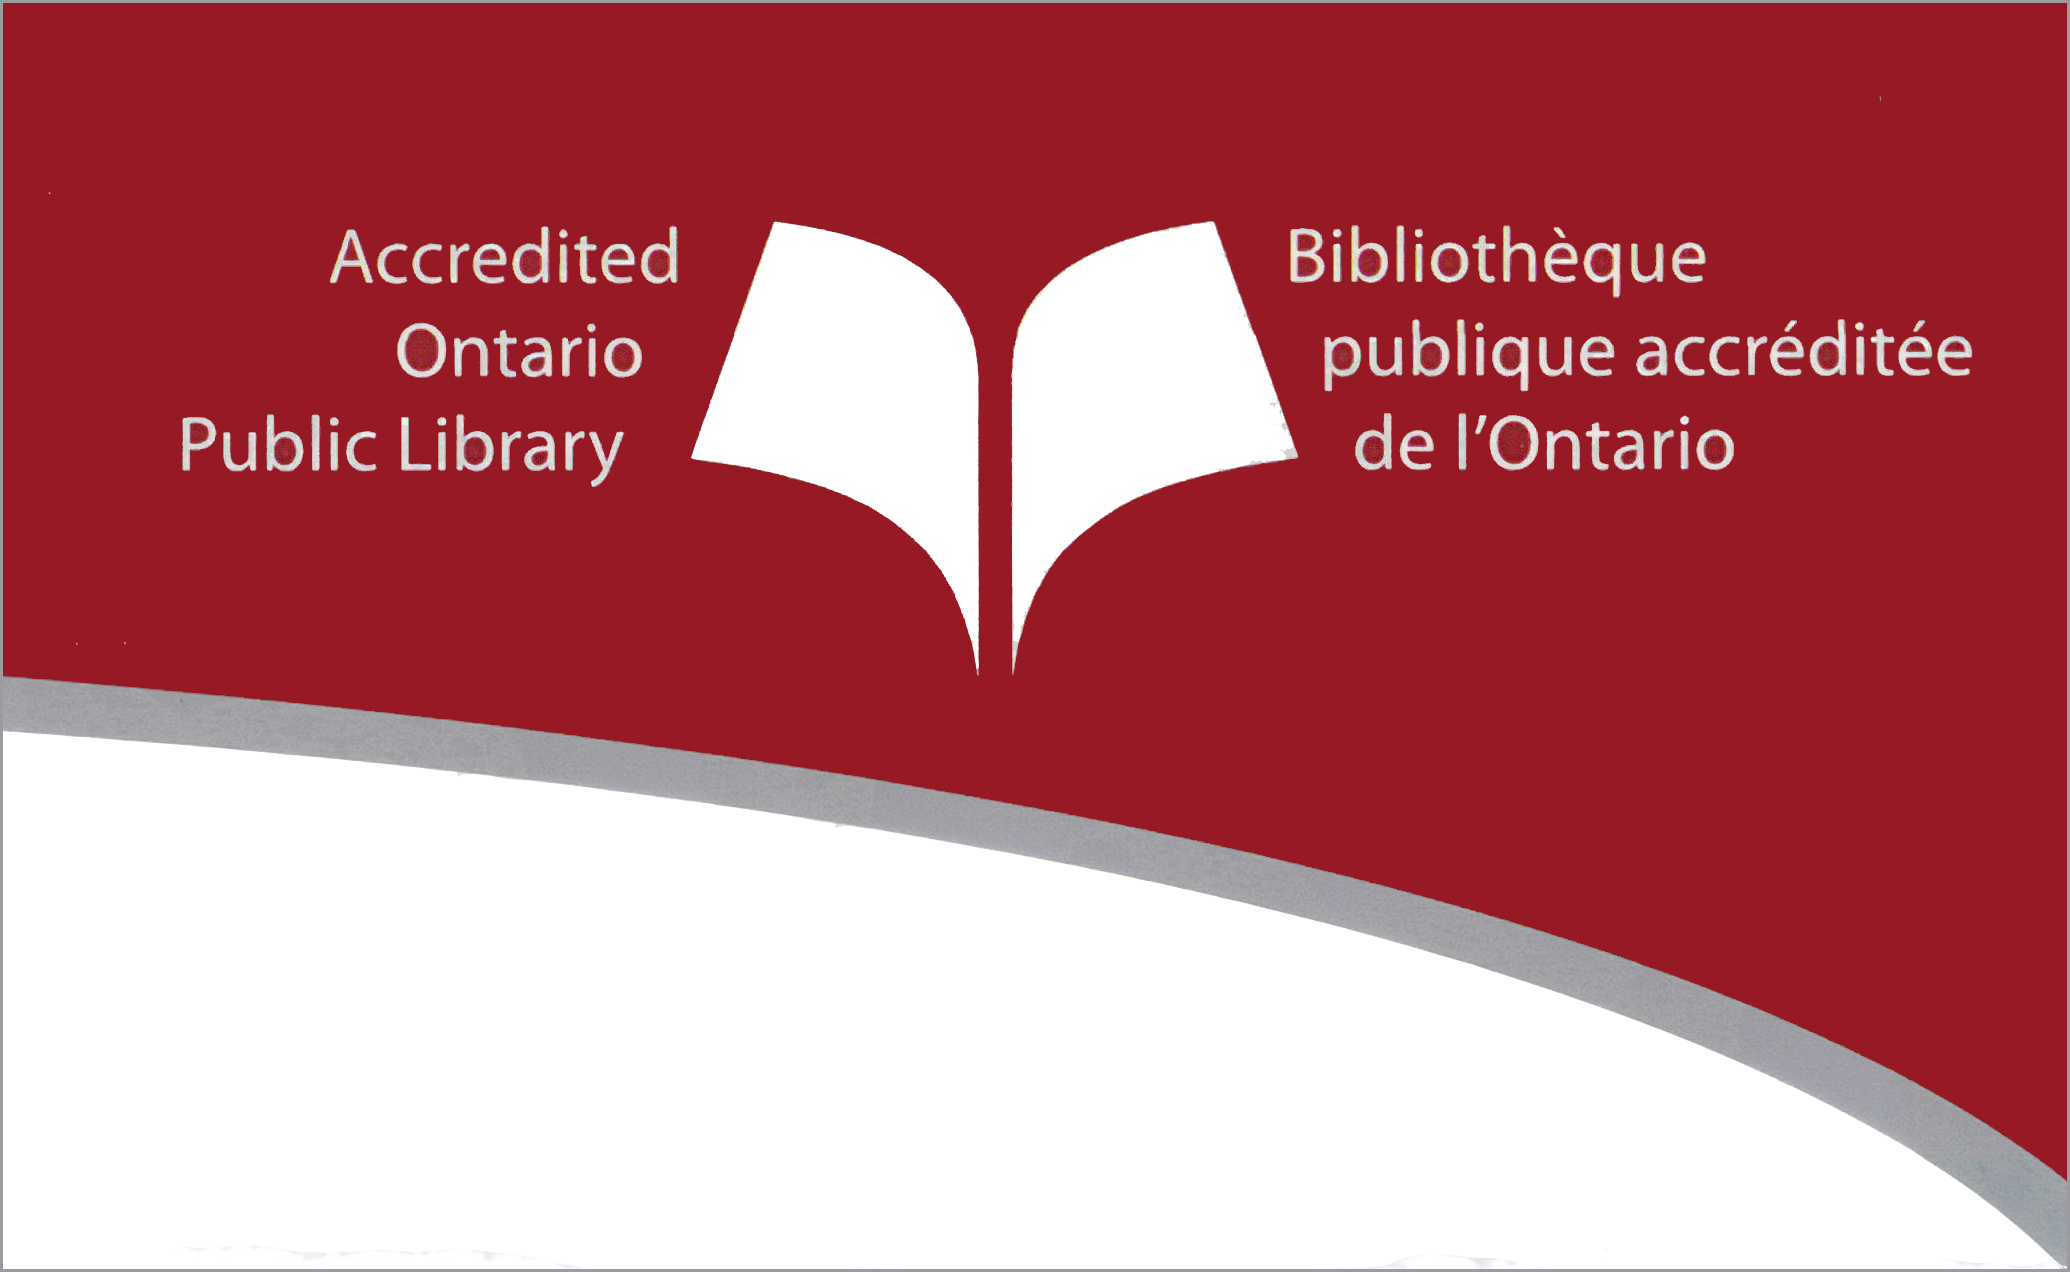 Accredited Ontario Public Library